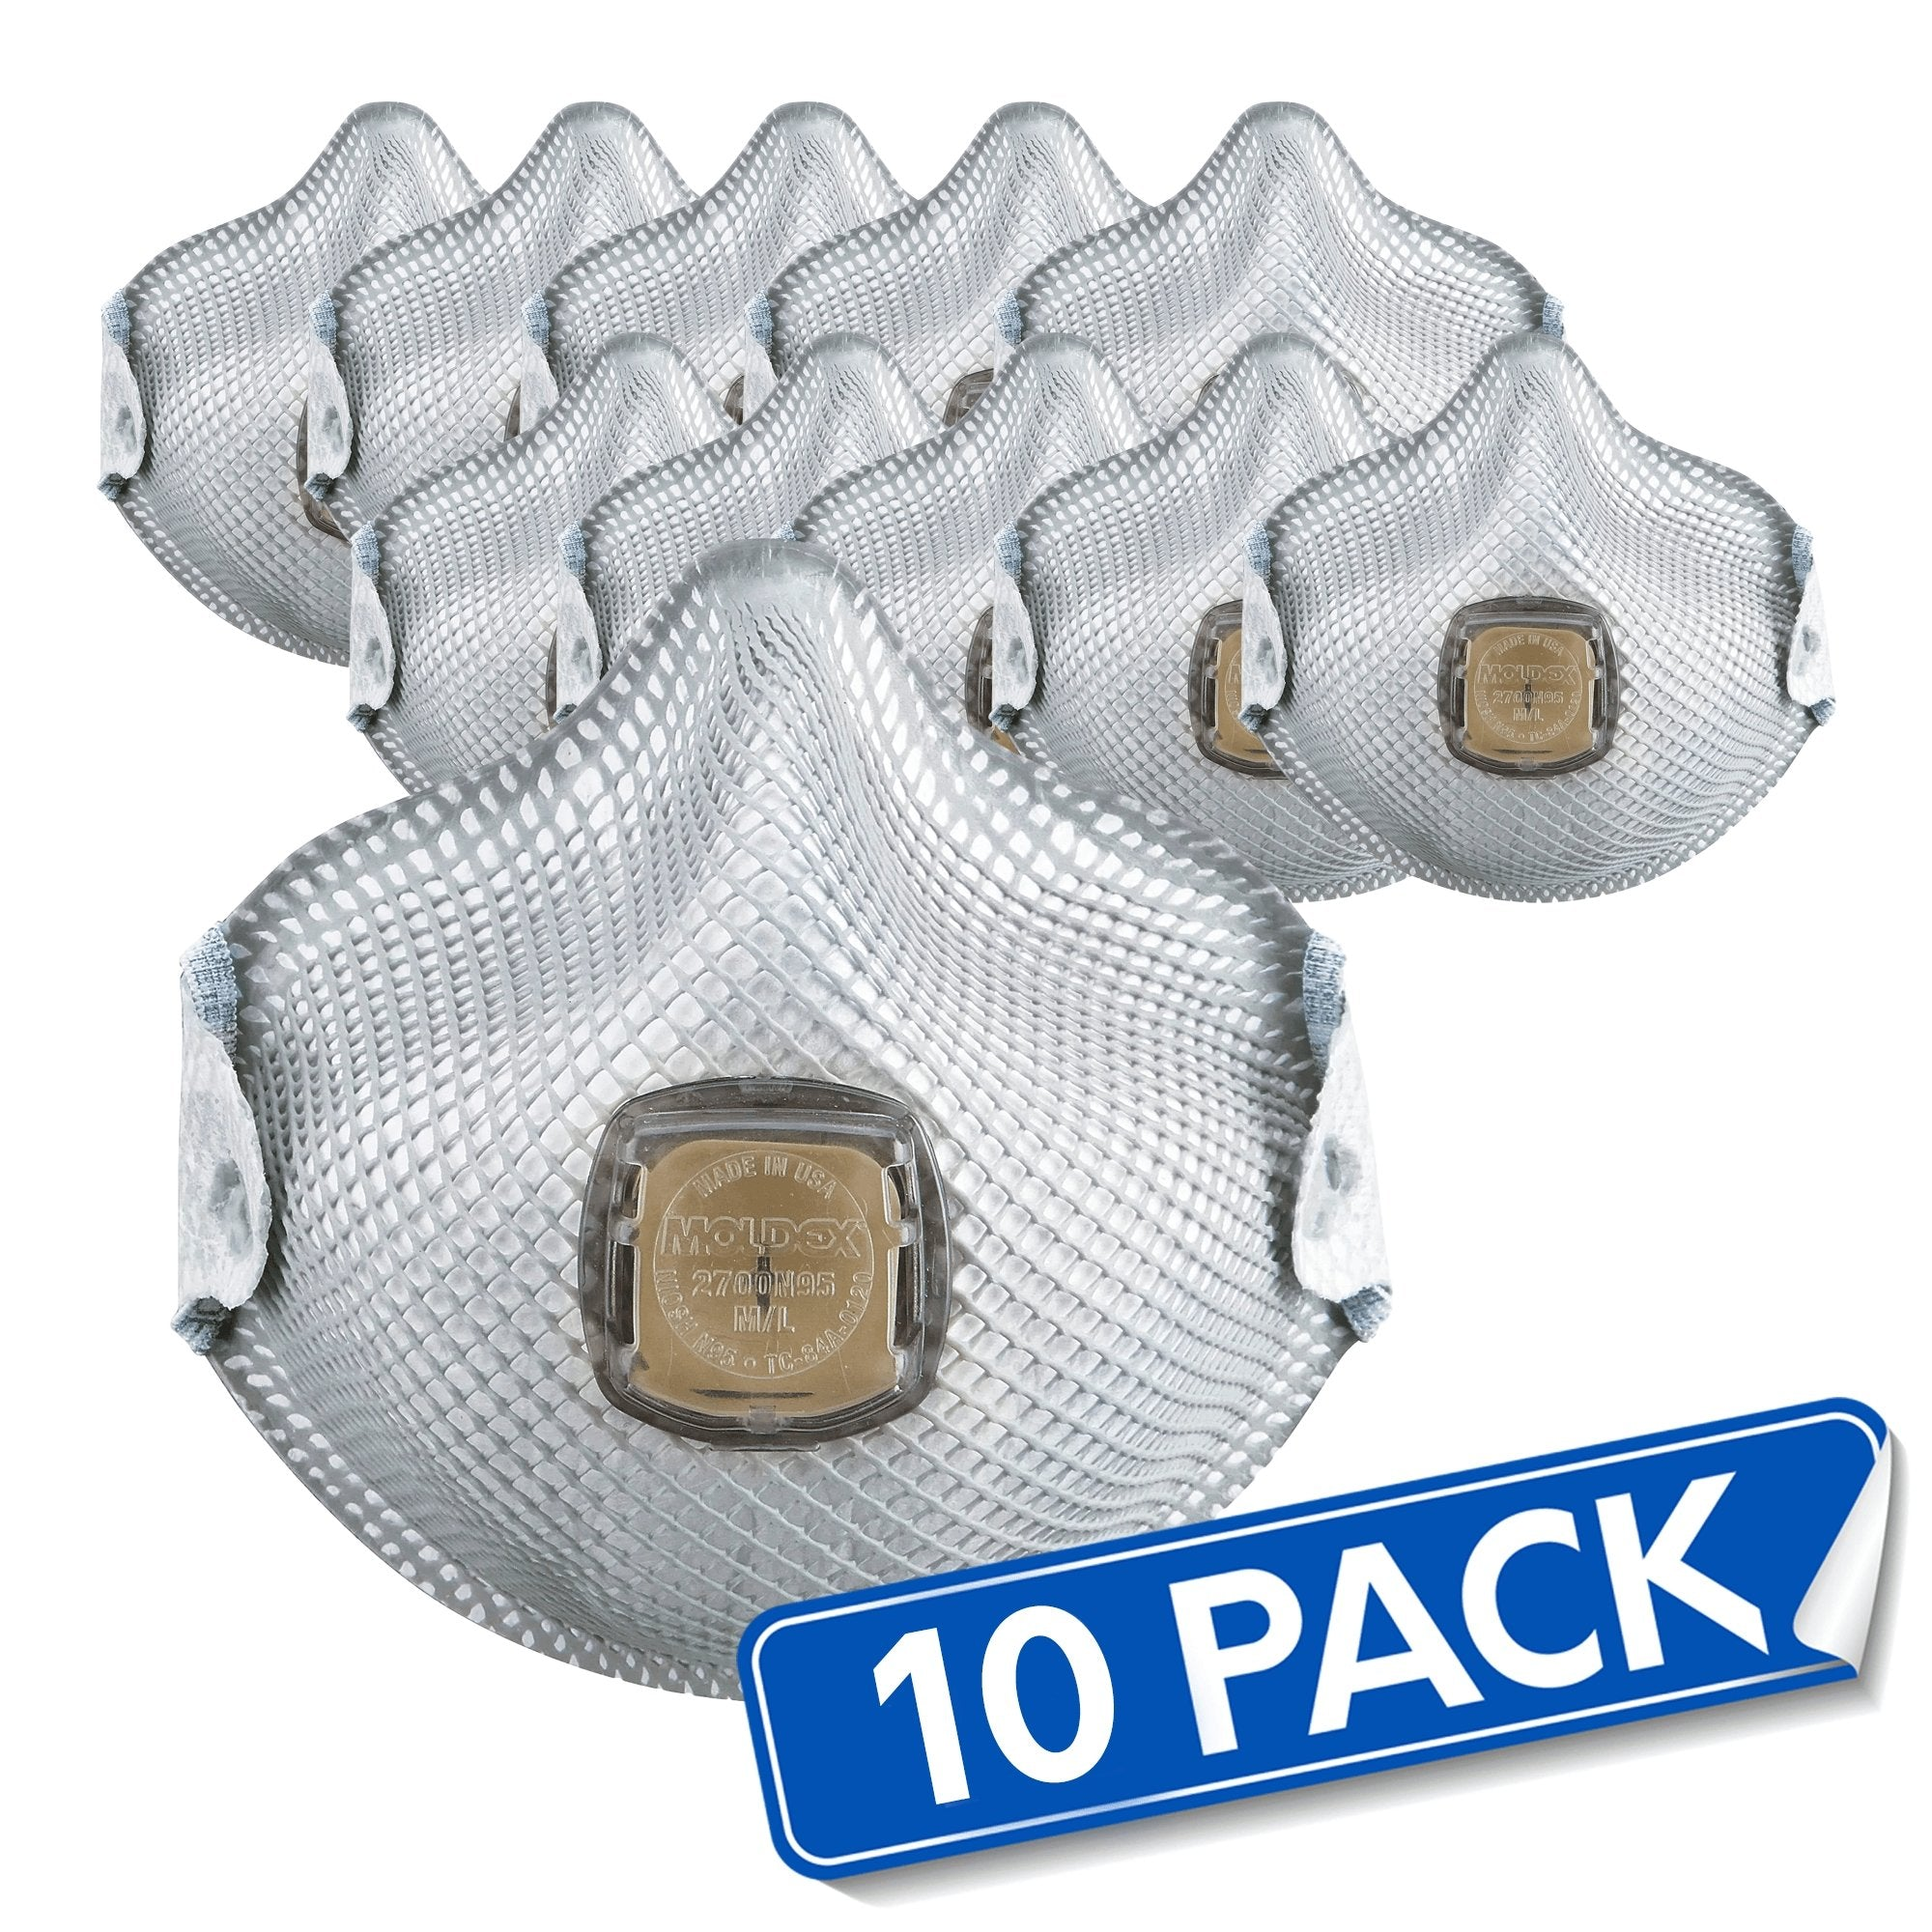 Moldex® 2700 N95 Masks - Bayview Pharmacy